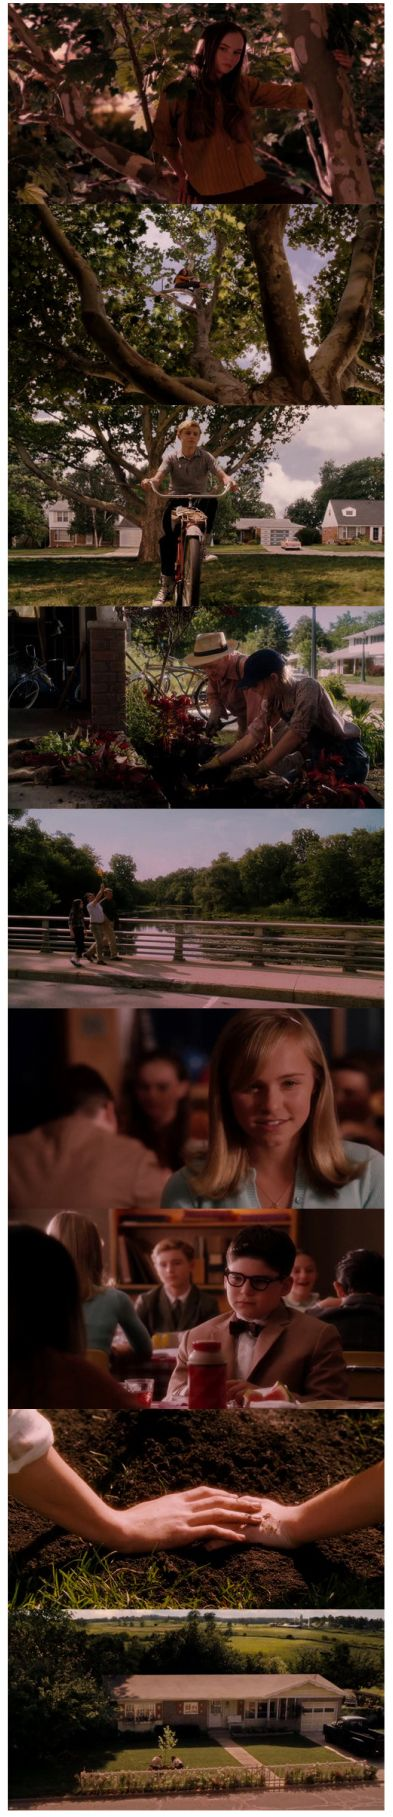 Flipped is a great movie anndddd book. My favorite for both :D